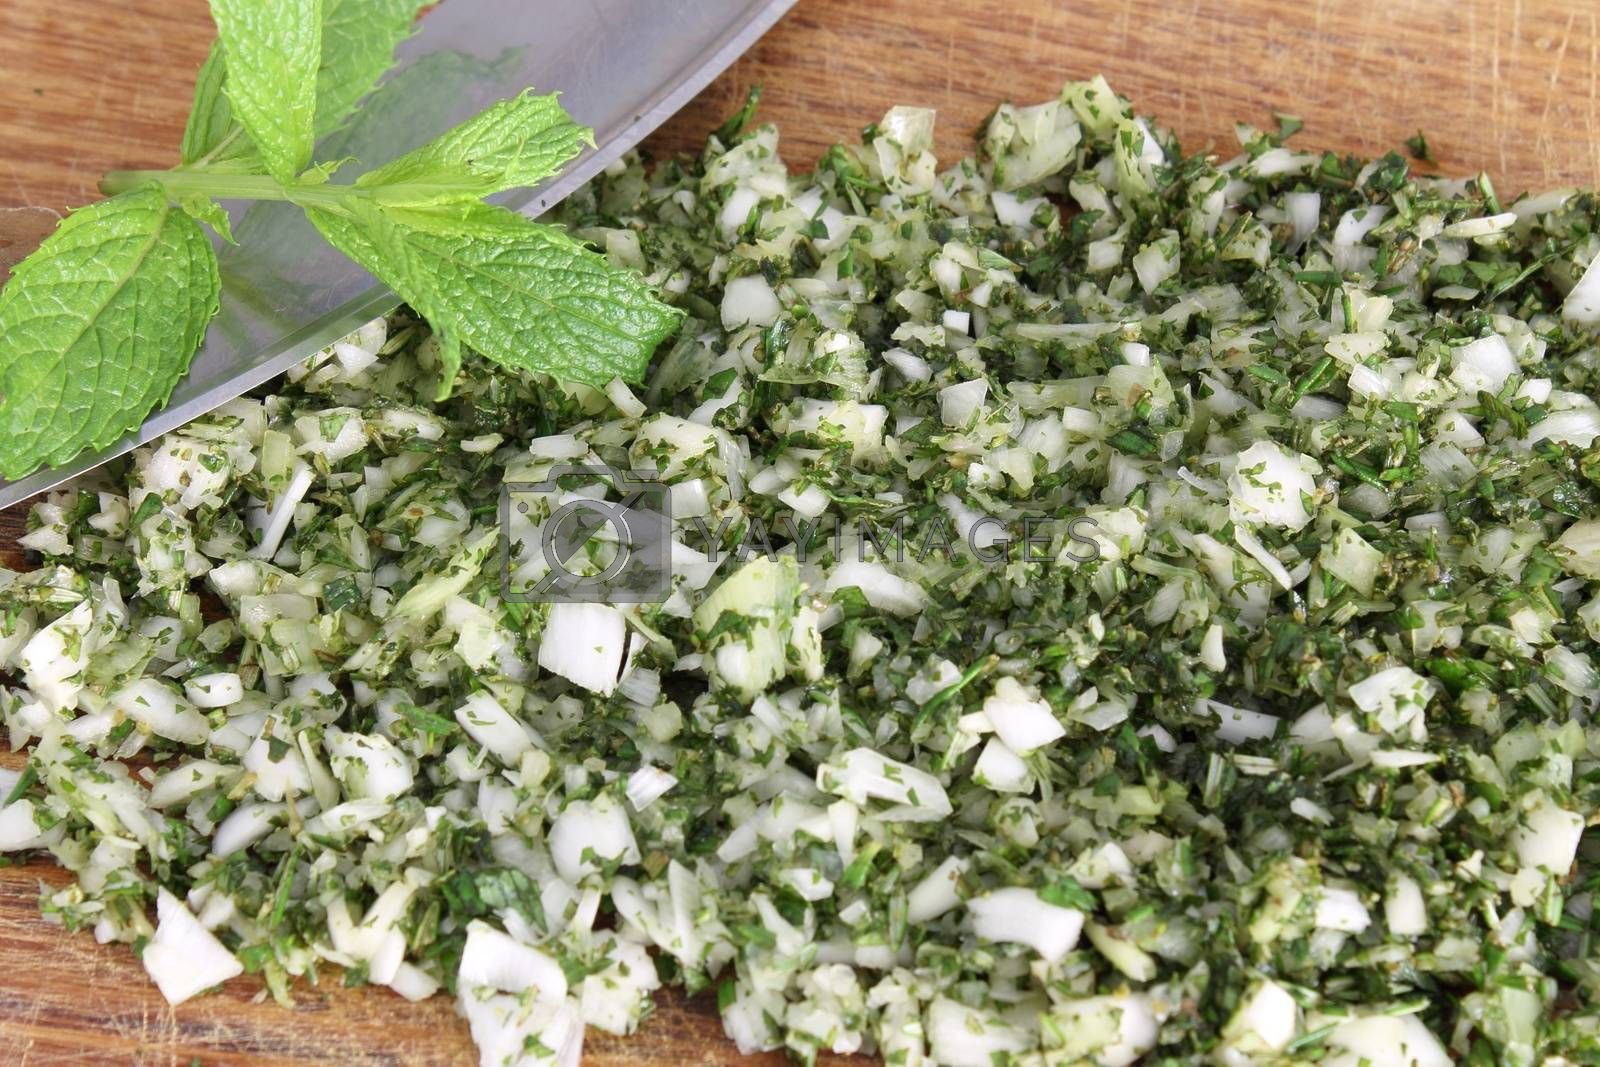 Chopped herbs and onion with mezzaluna